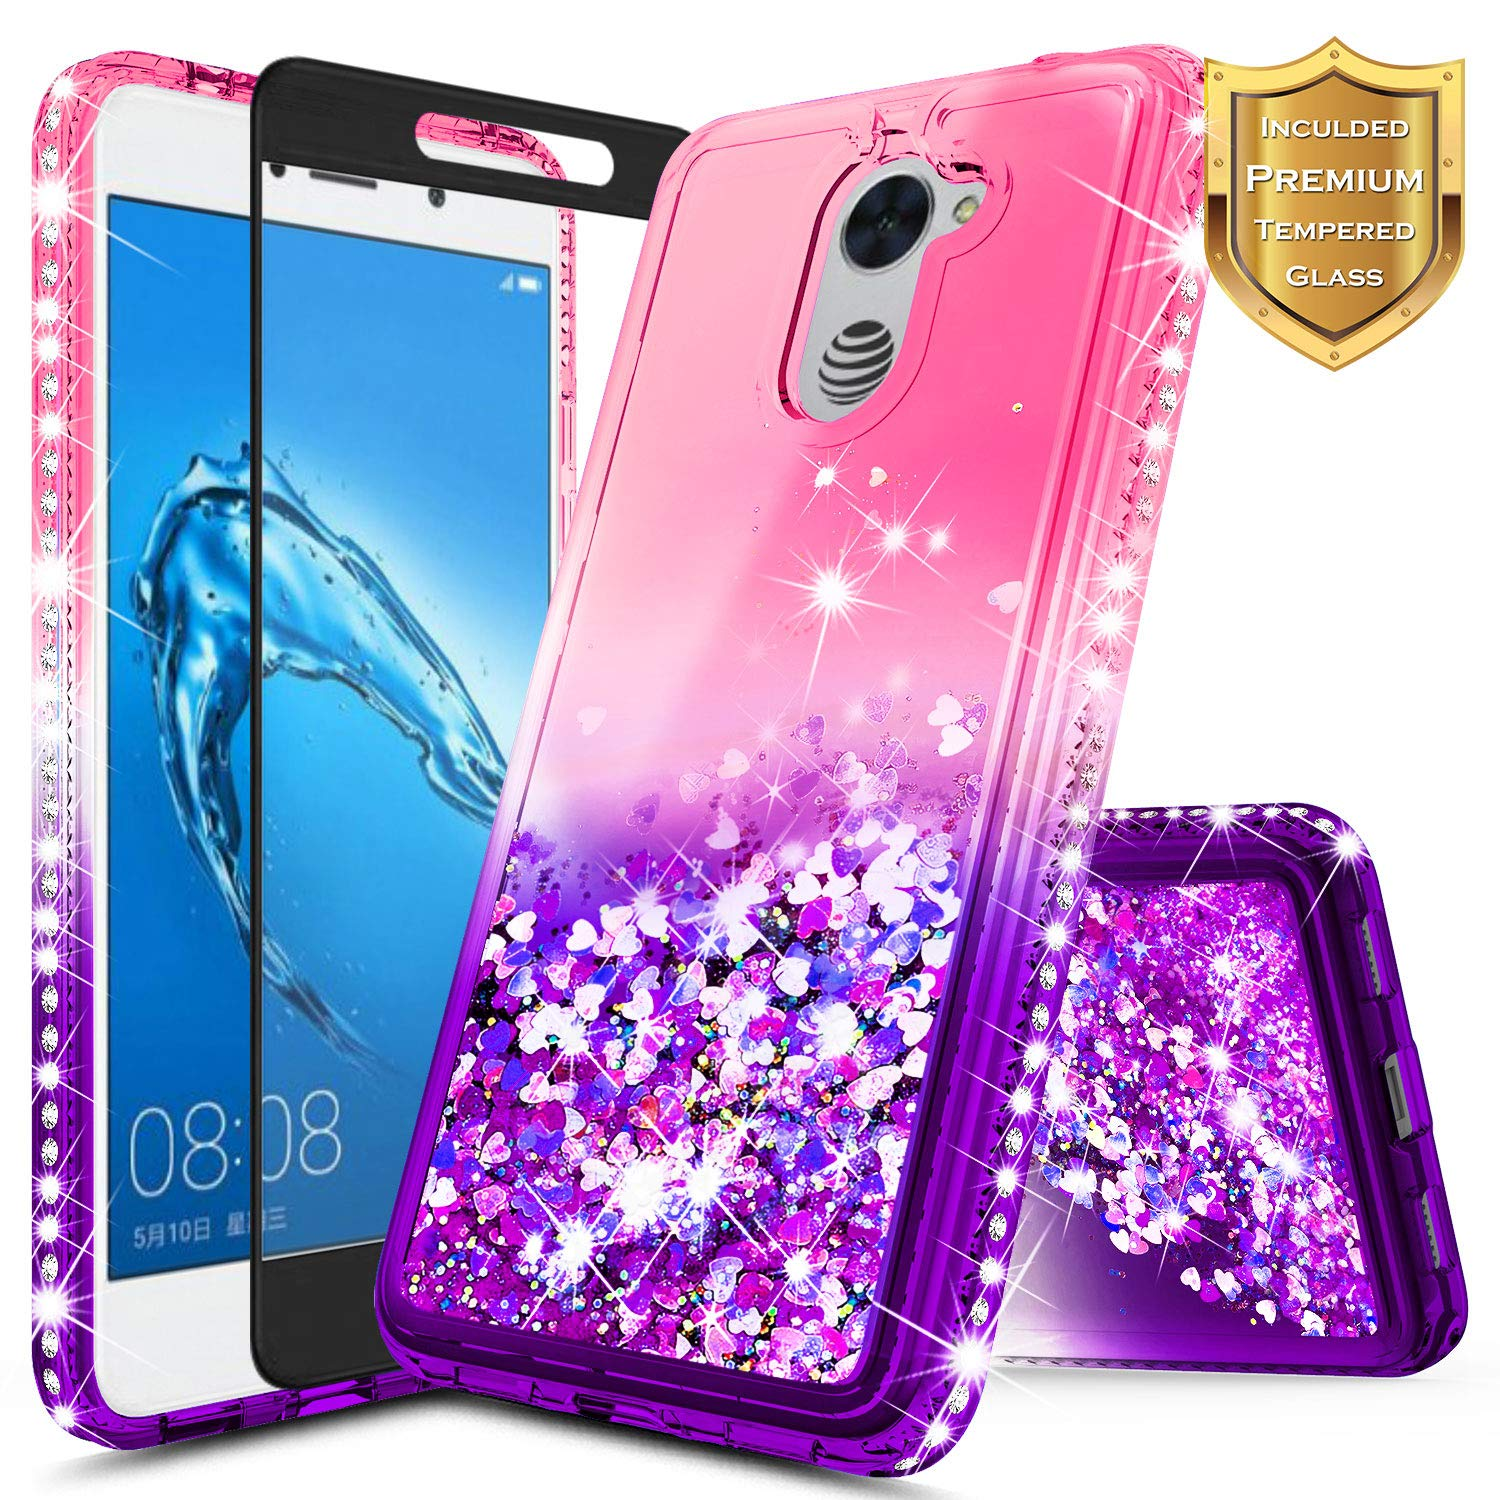 NageBee [Glitter] Case Compatible with Huawei Ascend XT 2 (H1711) /Huawei Elate 4G LTE w/[Tempered Glass Screen Protector] Liquid Quicksand Waterfall Flowing Sparkle Shiny Diamond Case -Pink/Purple